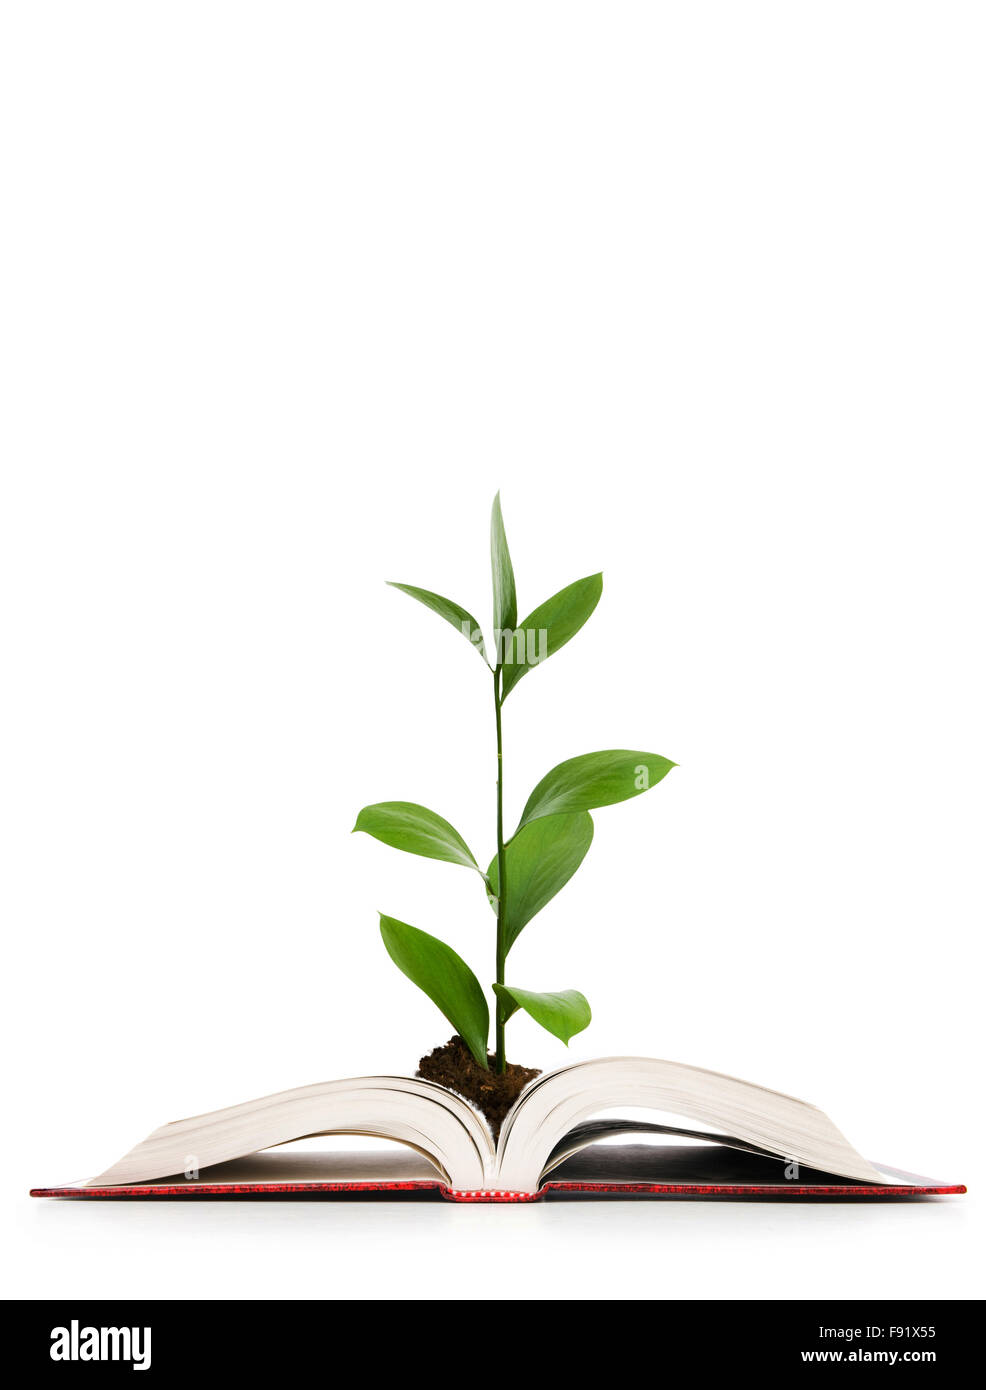 9a665a5928fae Knowledge concept - Leaves growing out of book Stock Photo: 91626225 ...